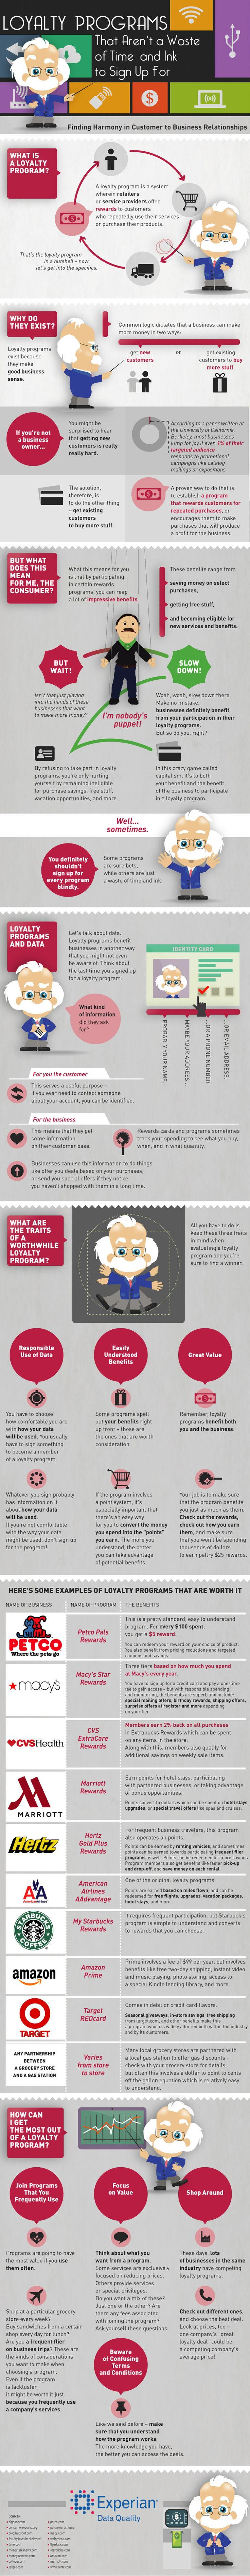 Loyalty Programs That Aren't a Waste of Time and Ink To Sign Up For #infographic #Shopping #Business #Marketing